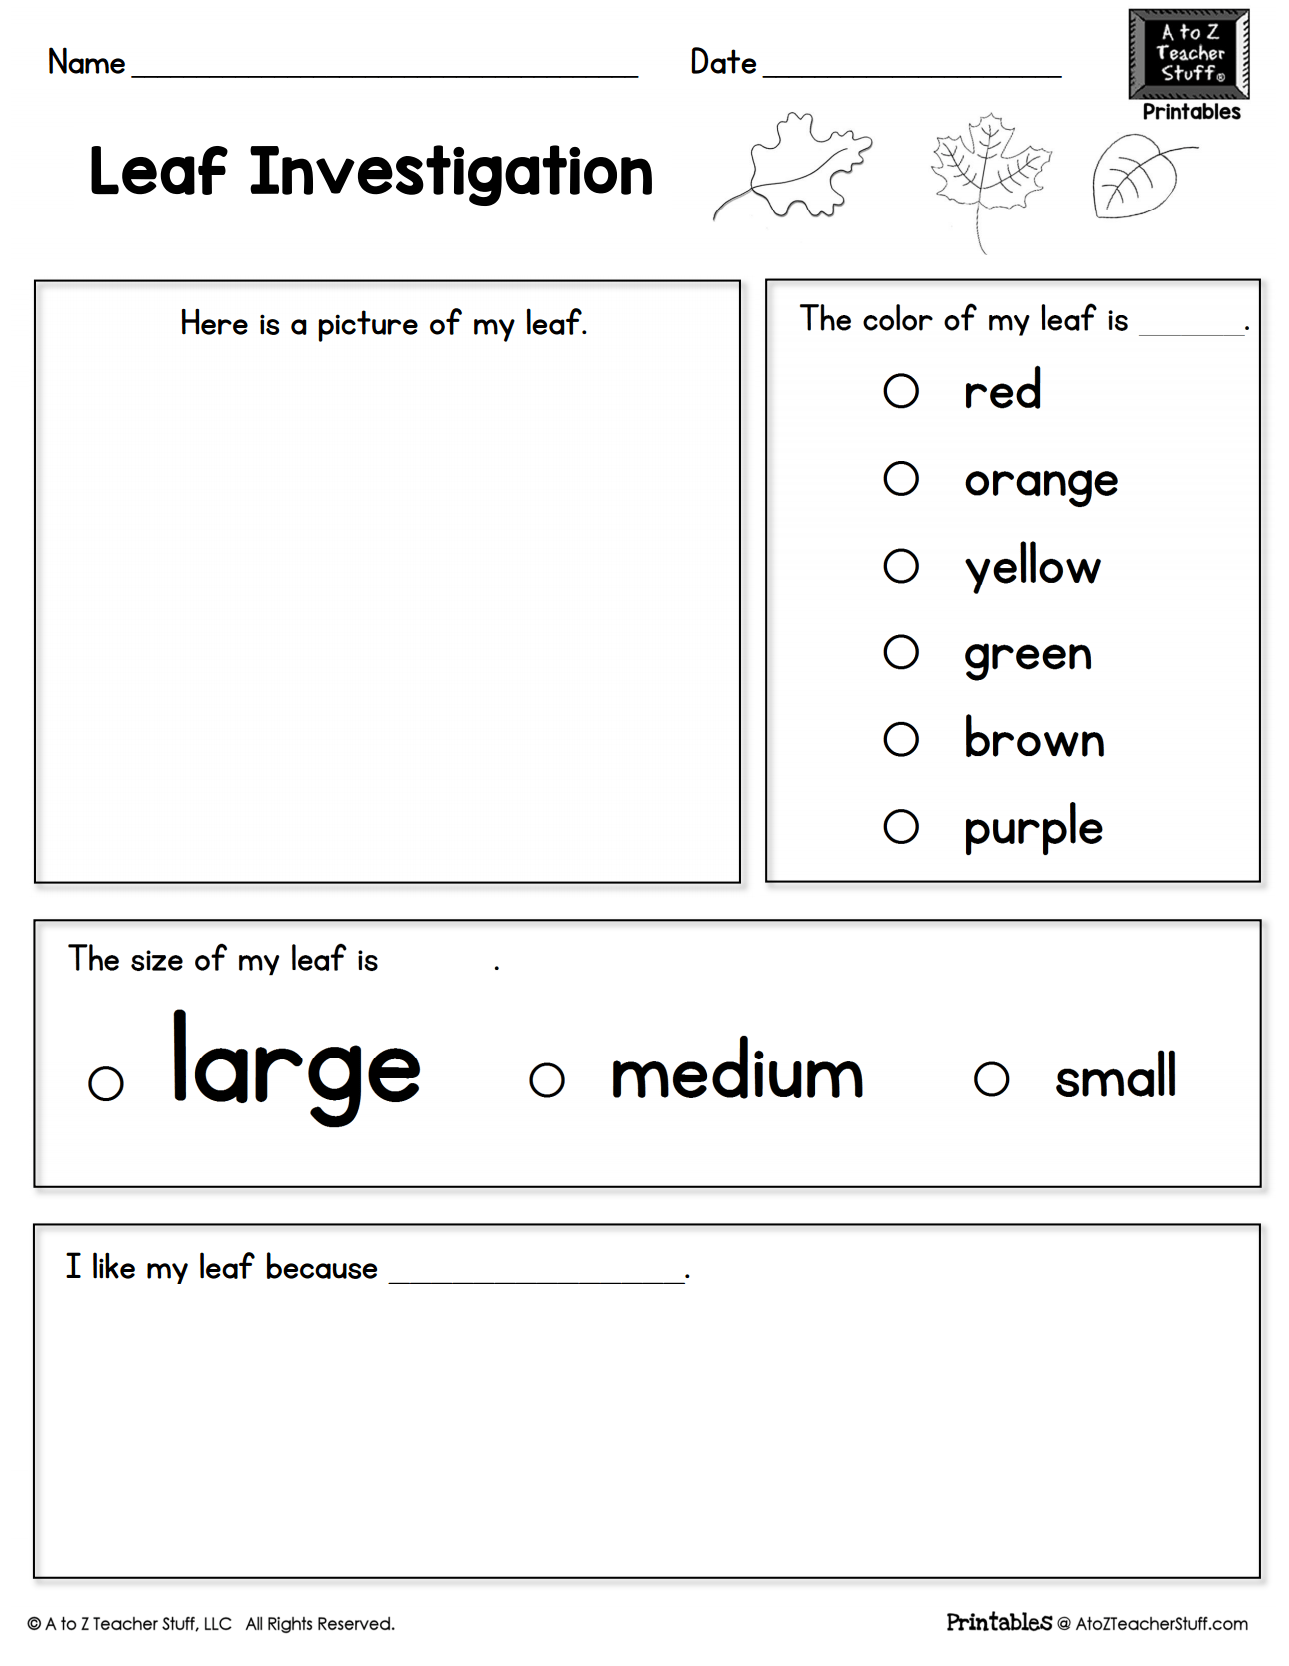 Leaf Investigation Printable Worksheet